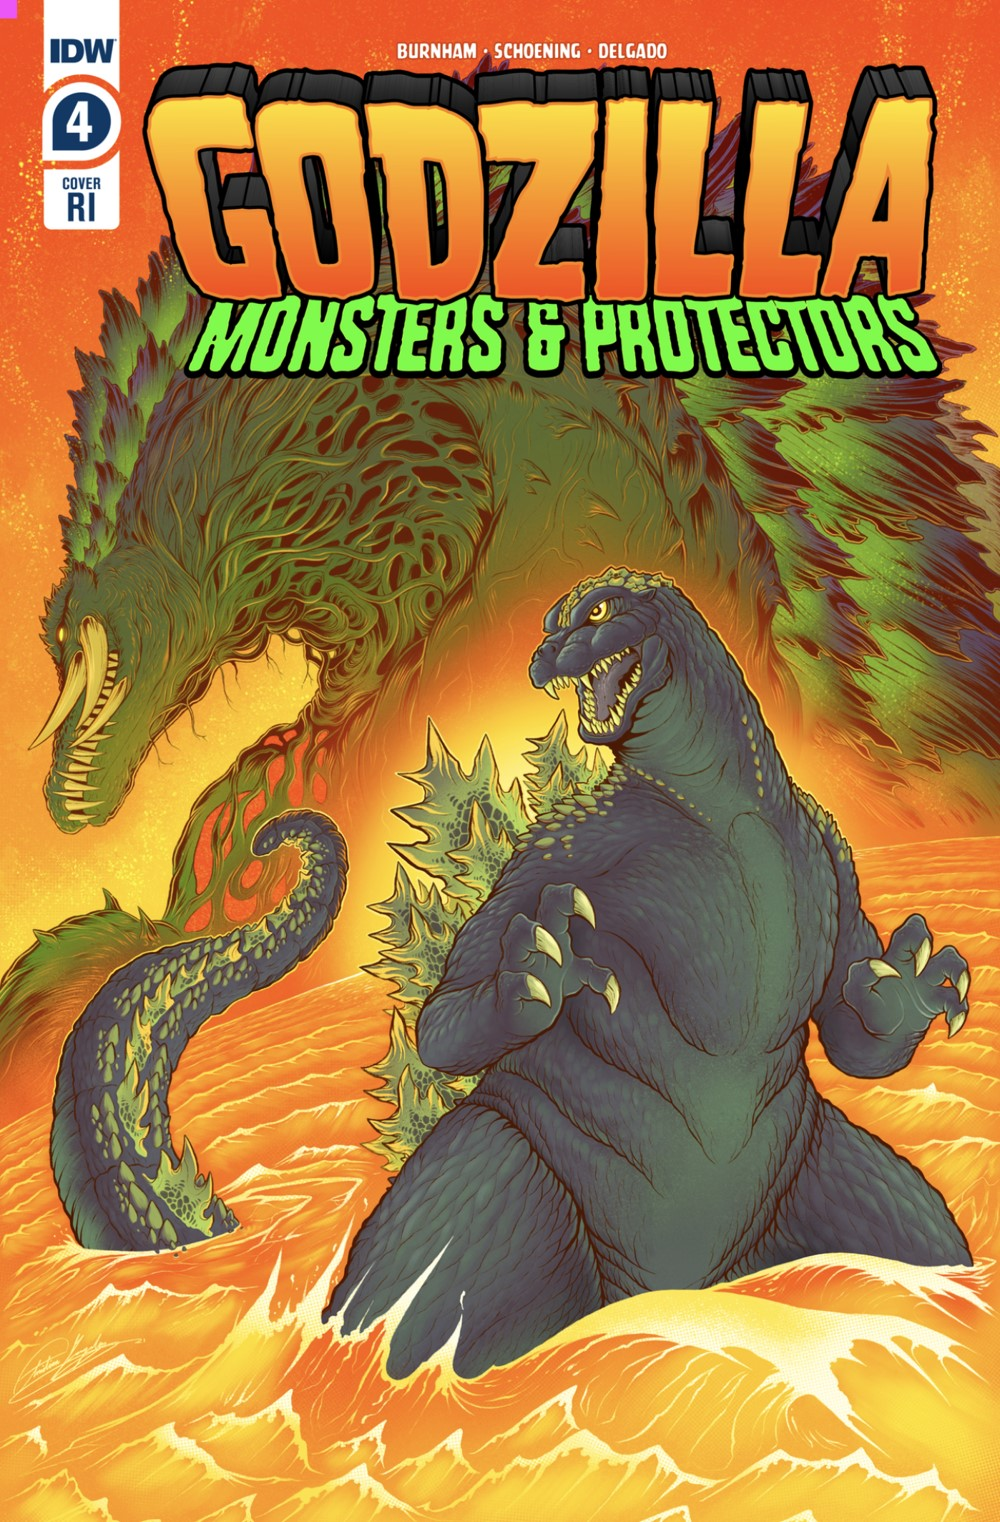 GODZILLA-MONSTERS-PROTECTORS-4-RI-COVER ComicList: IDW Publishing New Releases for 07/21/2021